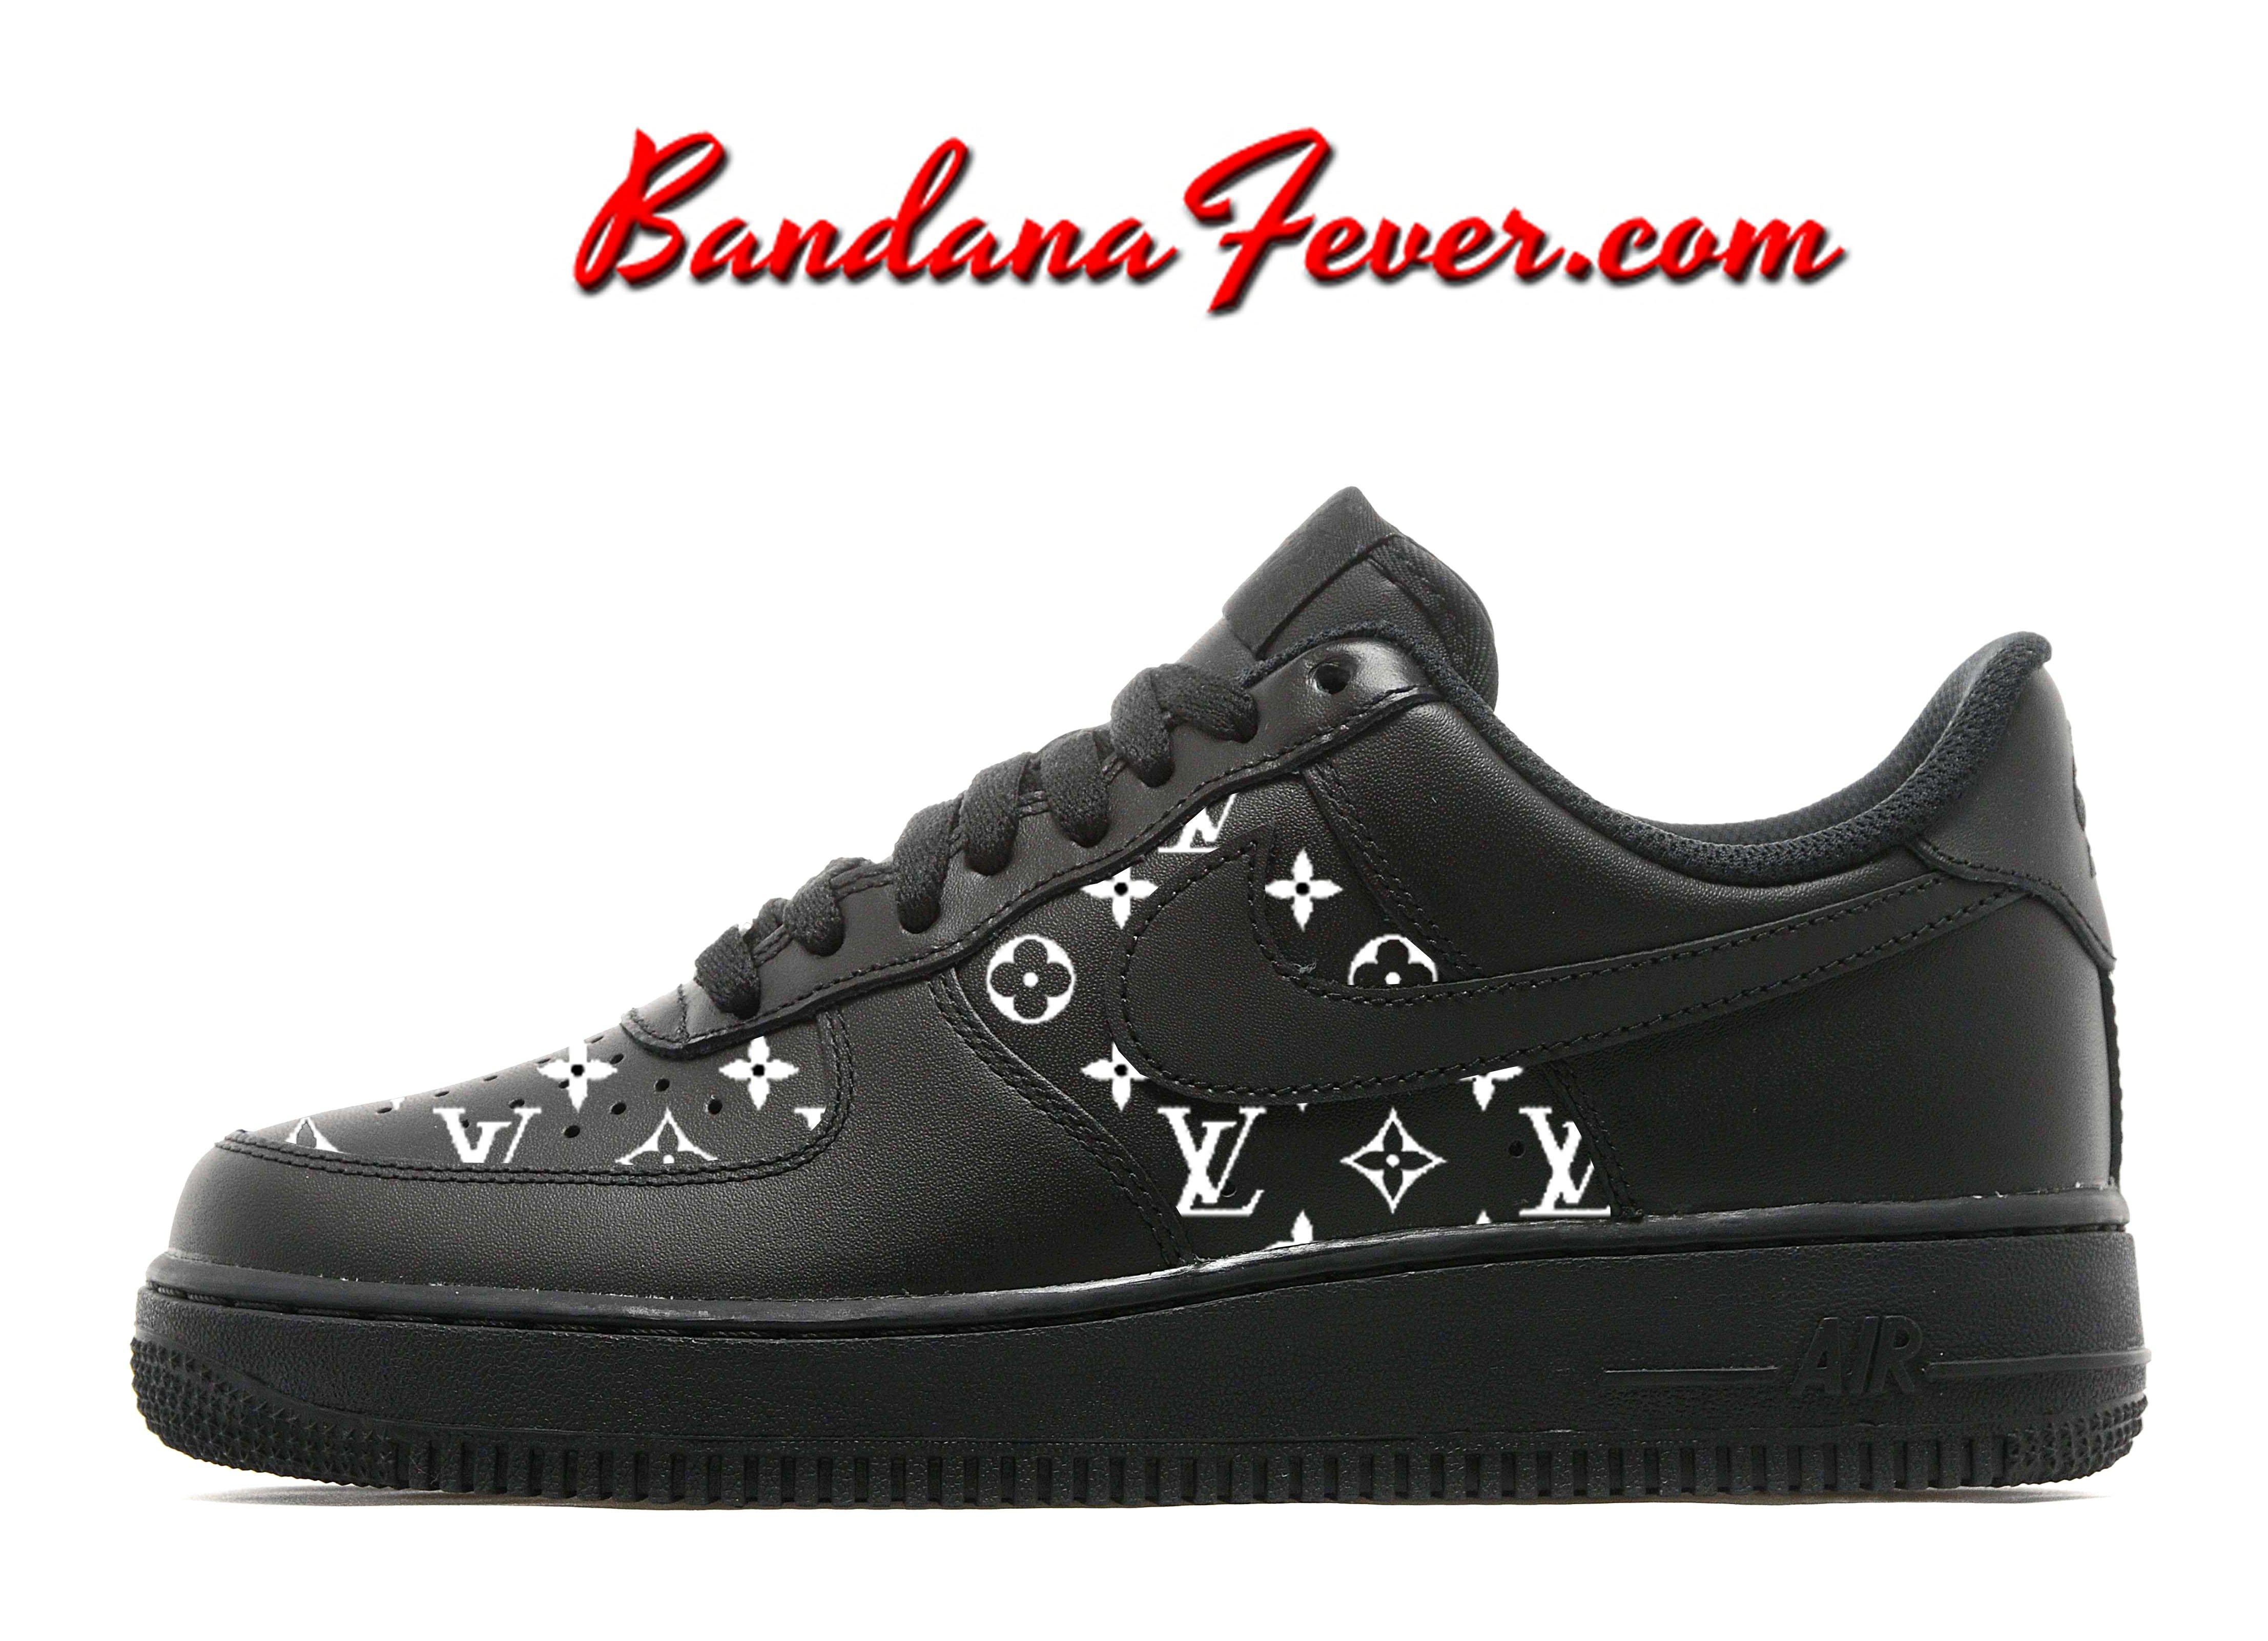 huge discount 31d9f aaa67 Custom Supreme White Monogram Nike Air Force 1 Shoes Black Low,  fashion   supremelv by Bandana Fever